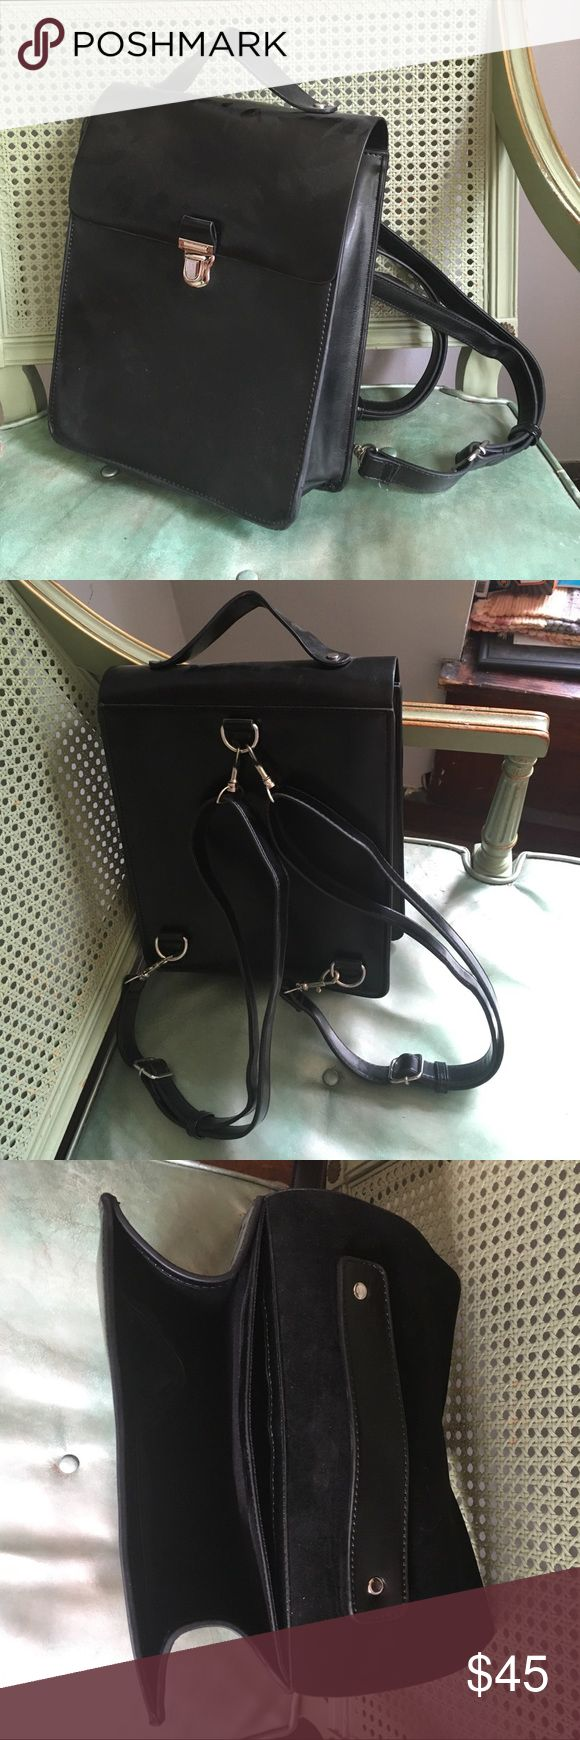 Urban Outfitters black backpack Urban Outfitters brand. Like new! Only used once!!! Black, with silver clasp on front. Urban Outfitters Bags Backpacks